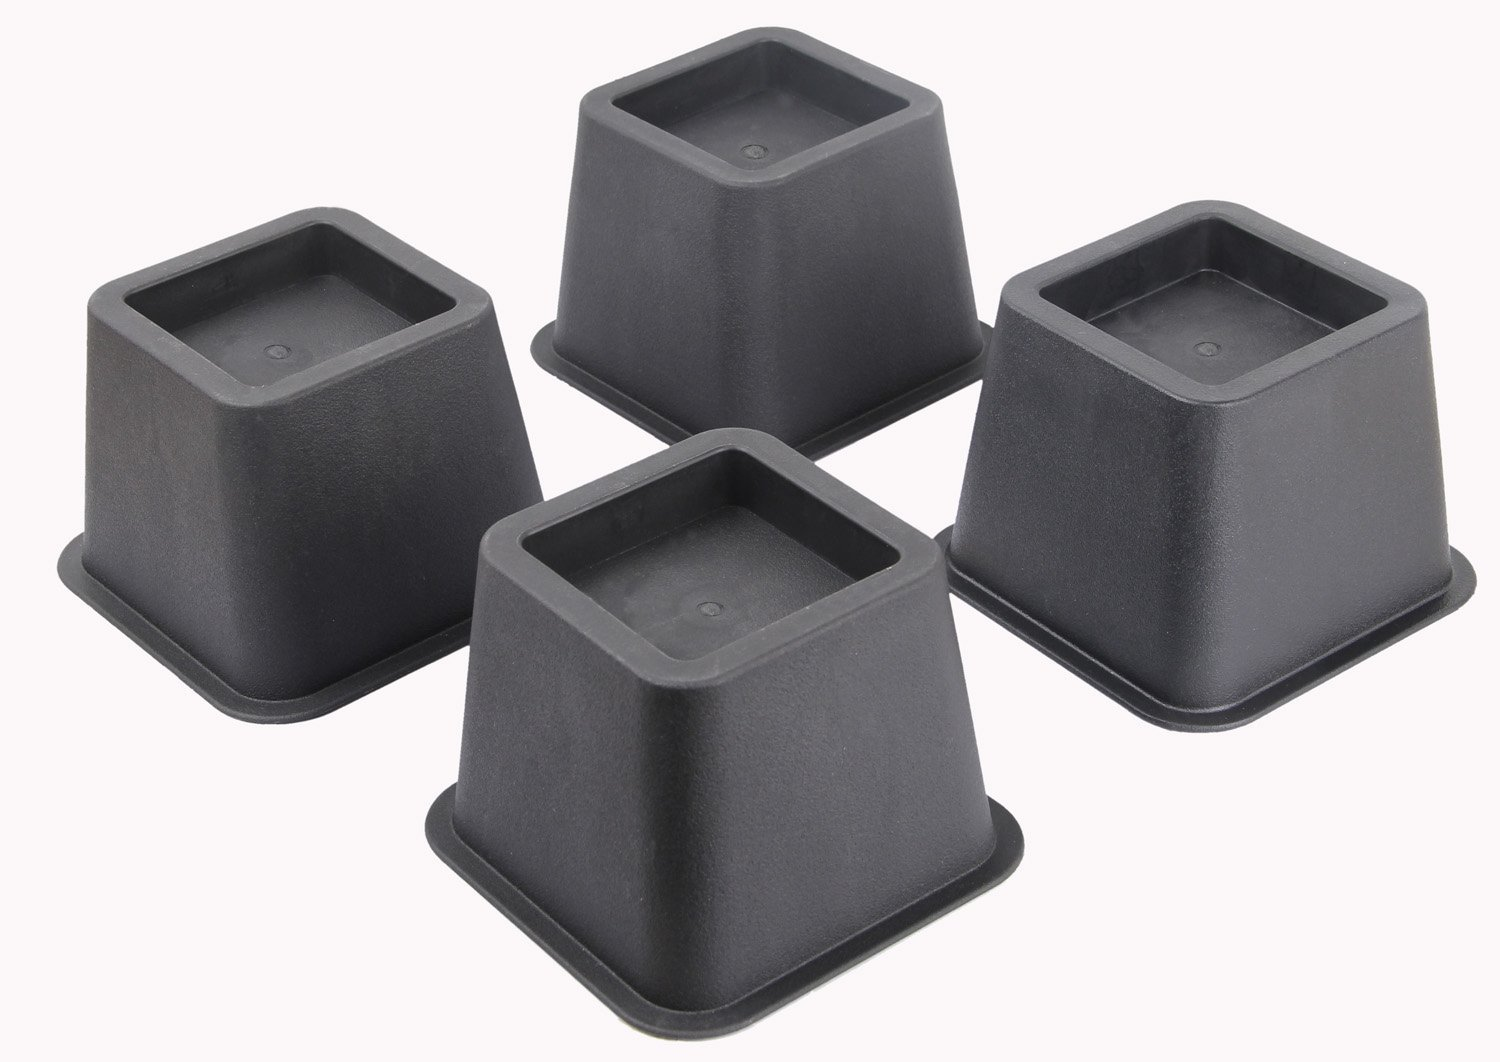 EASYGOING 4-pack 3 Inch Height Bed Risers, Furniture Riser Bed Riser and Bed Lifts,Helps you storage under the bed